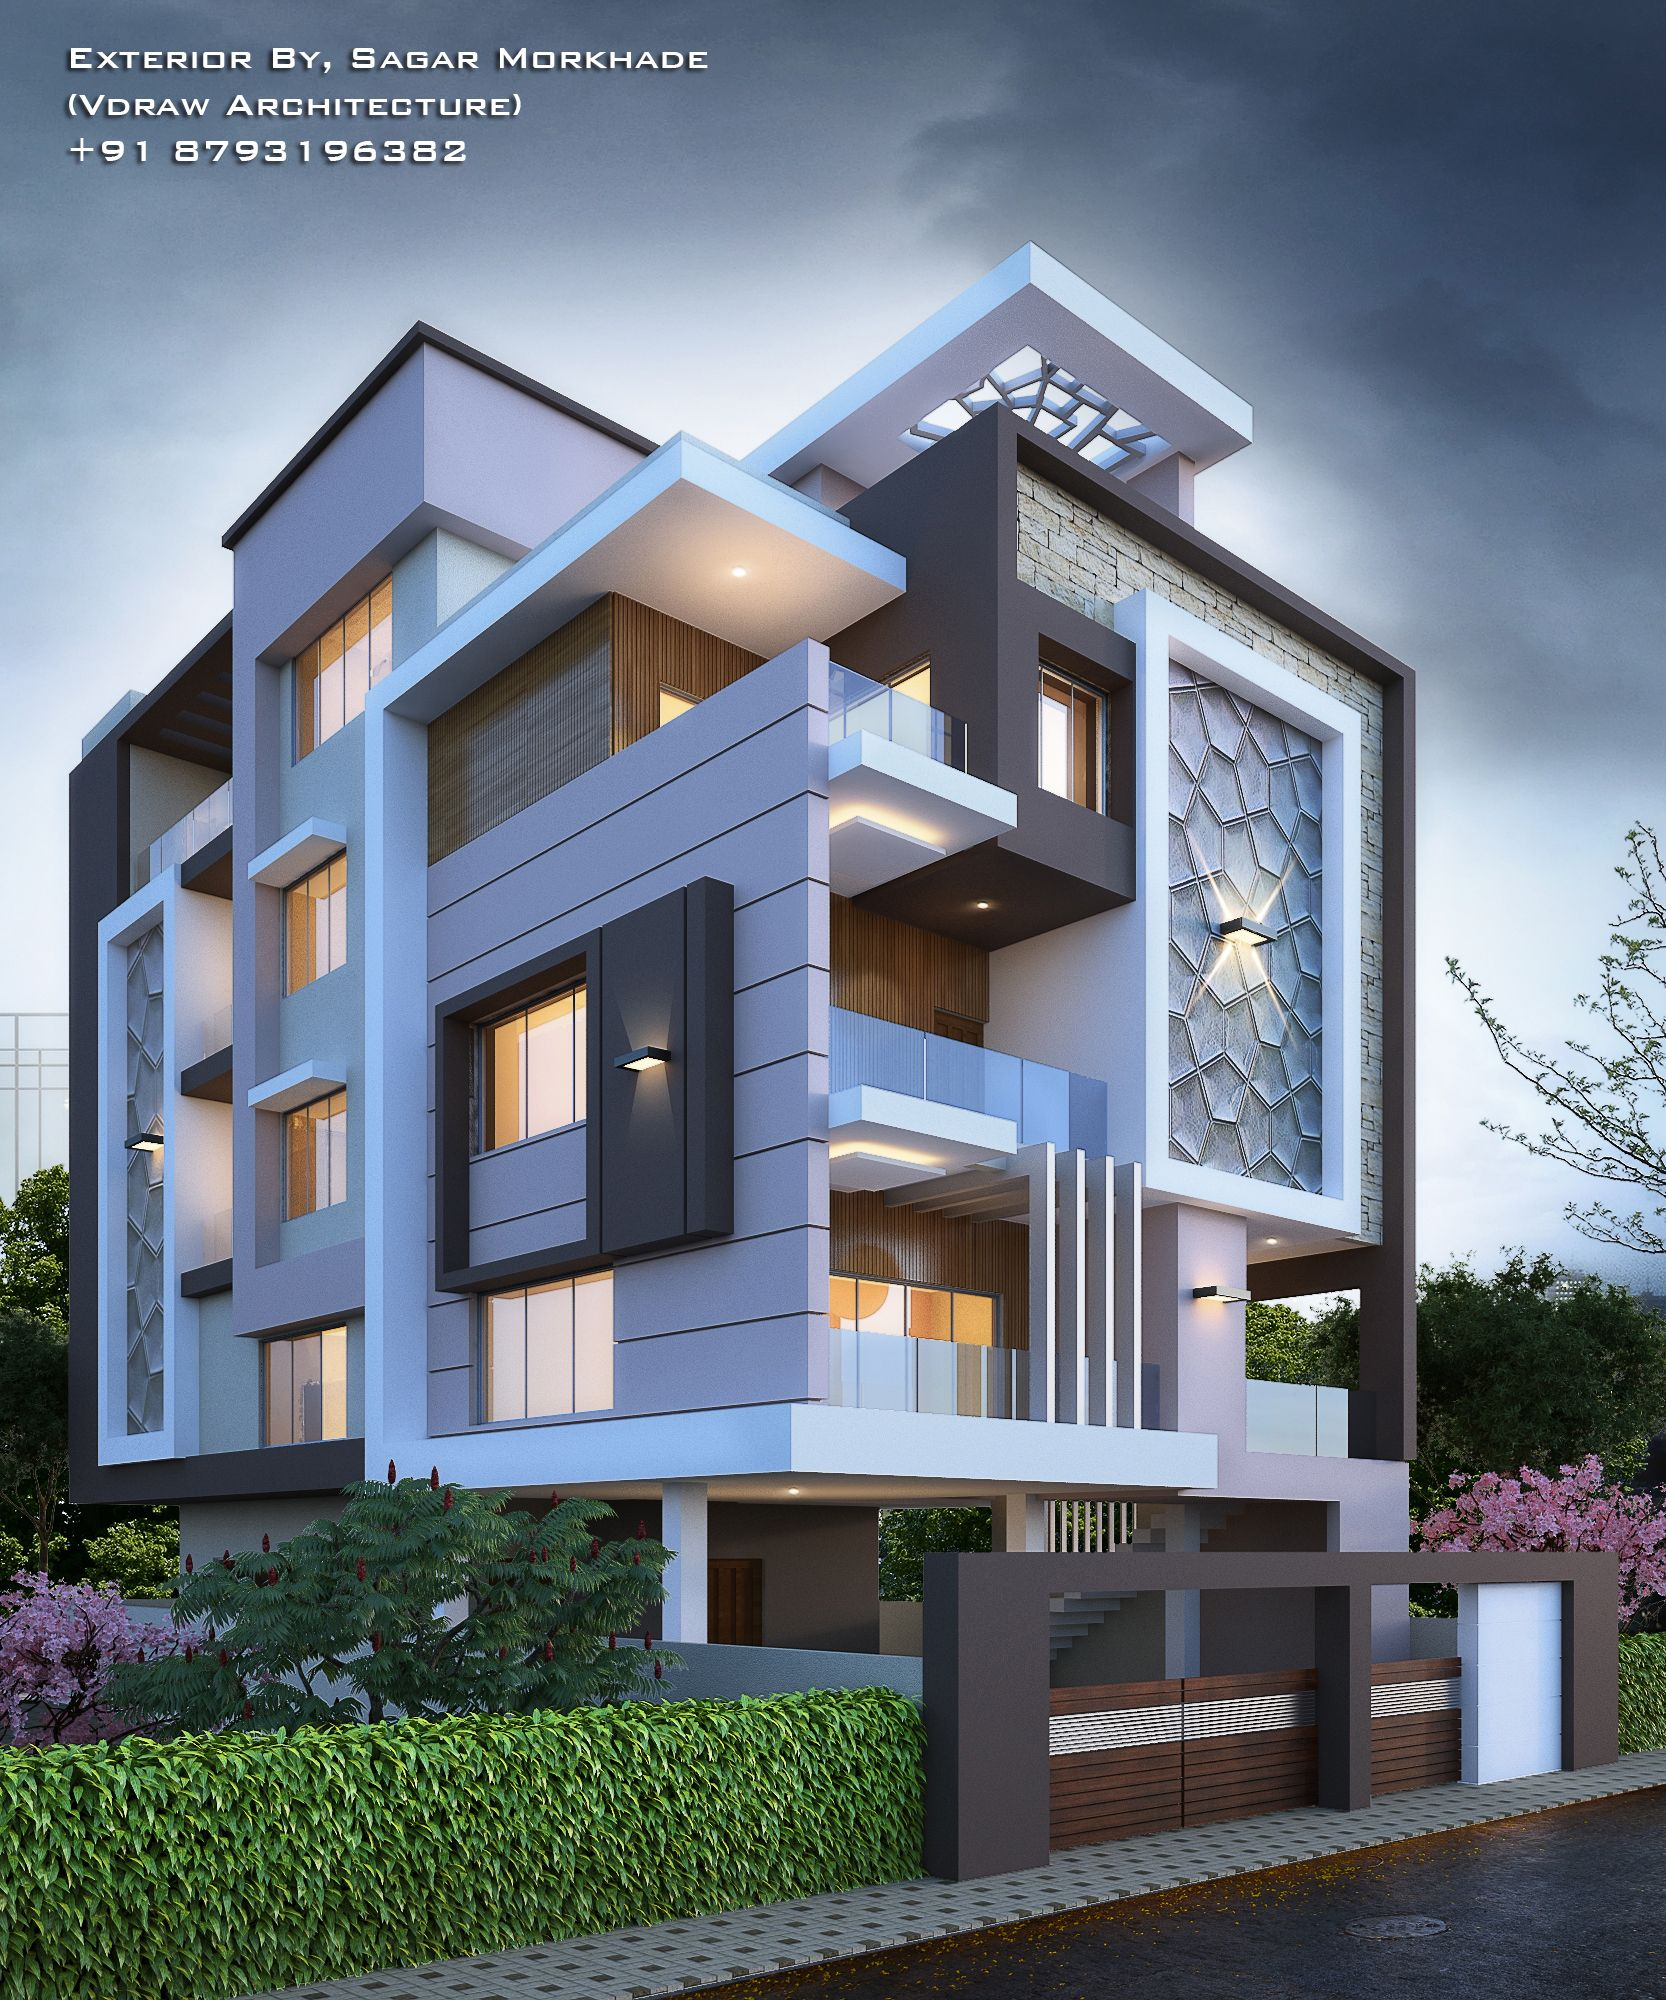 Modern Home Design Ideas Exterior: #Modern #Residential #House #bungalow #Exterior By, Sagar